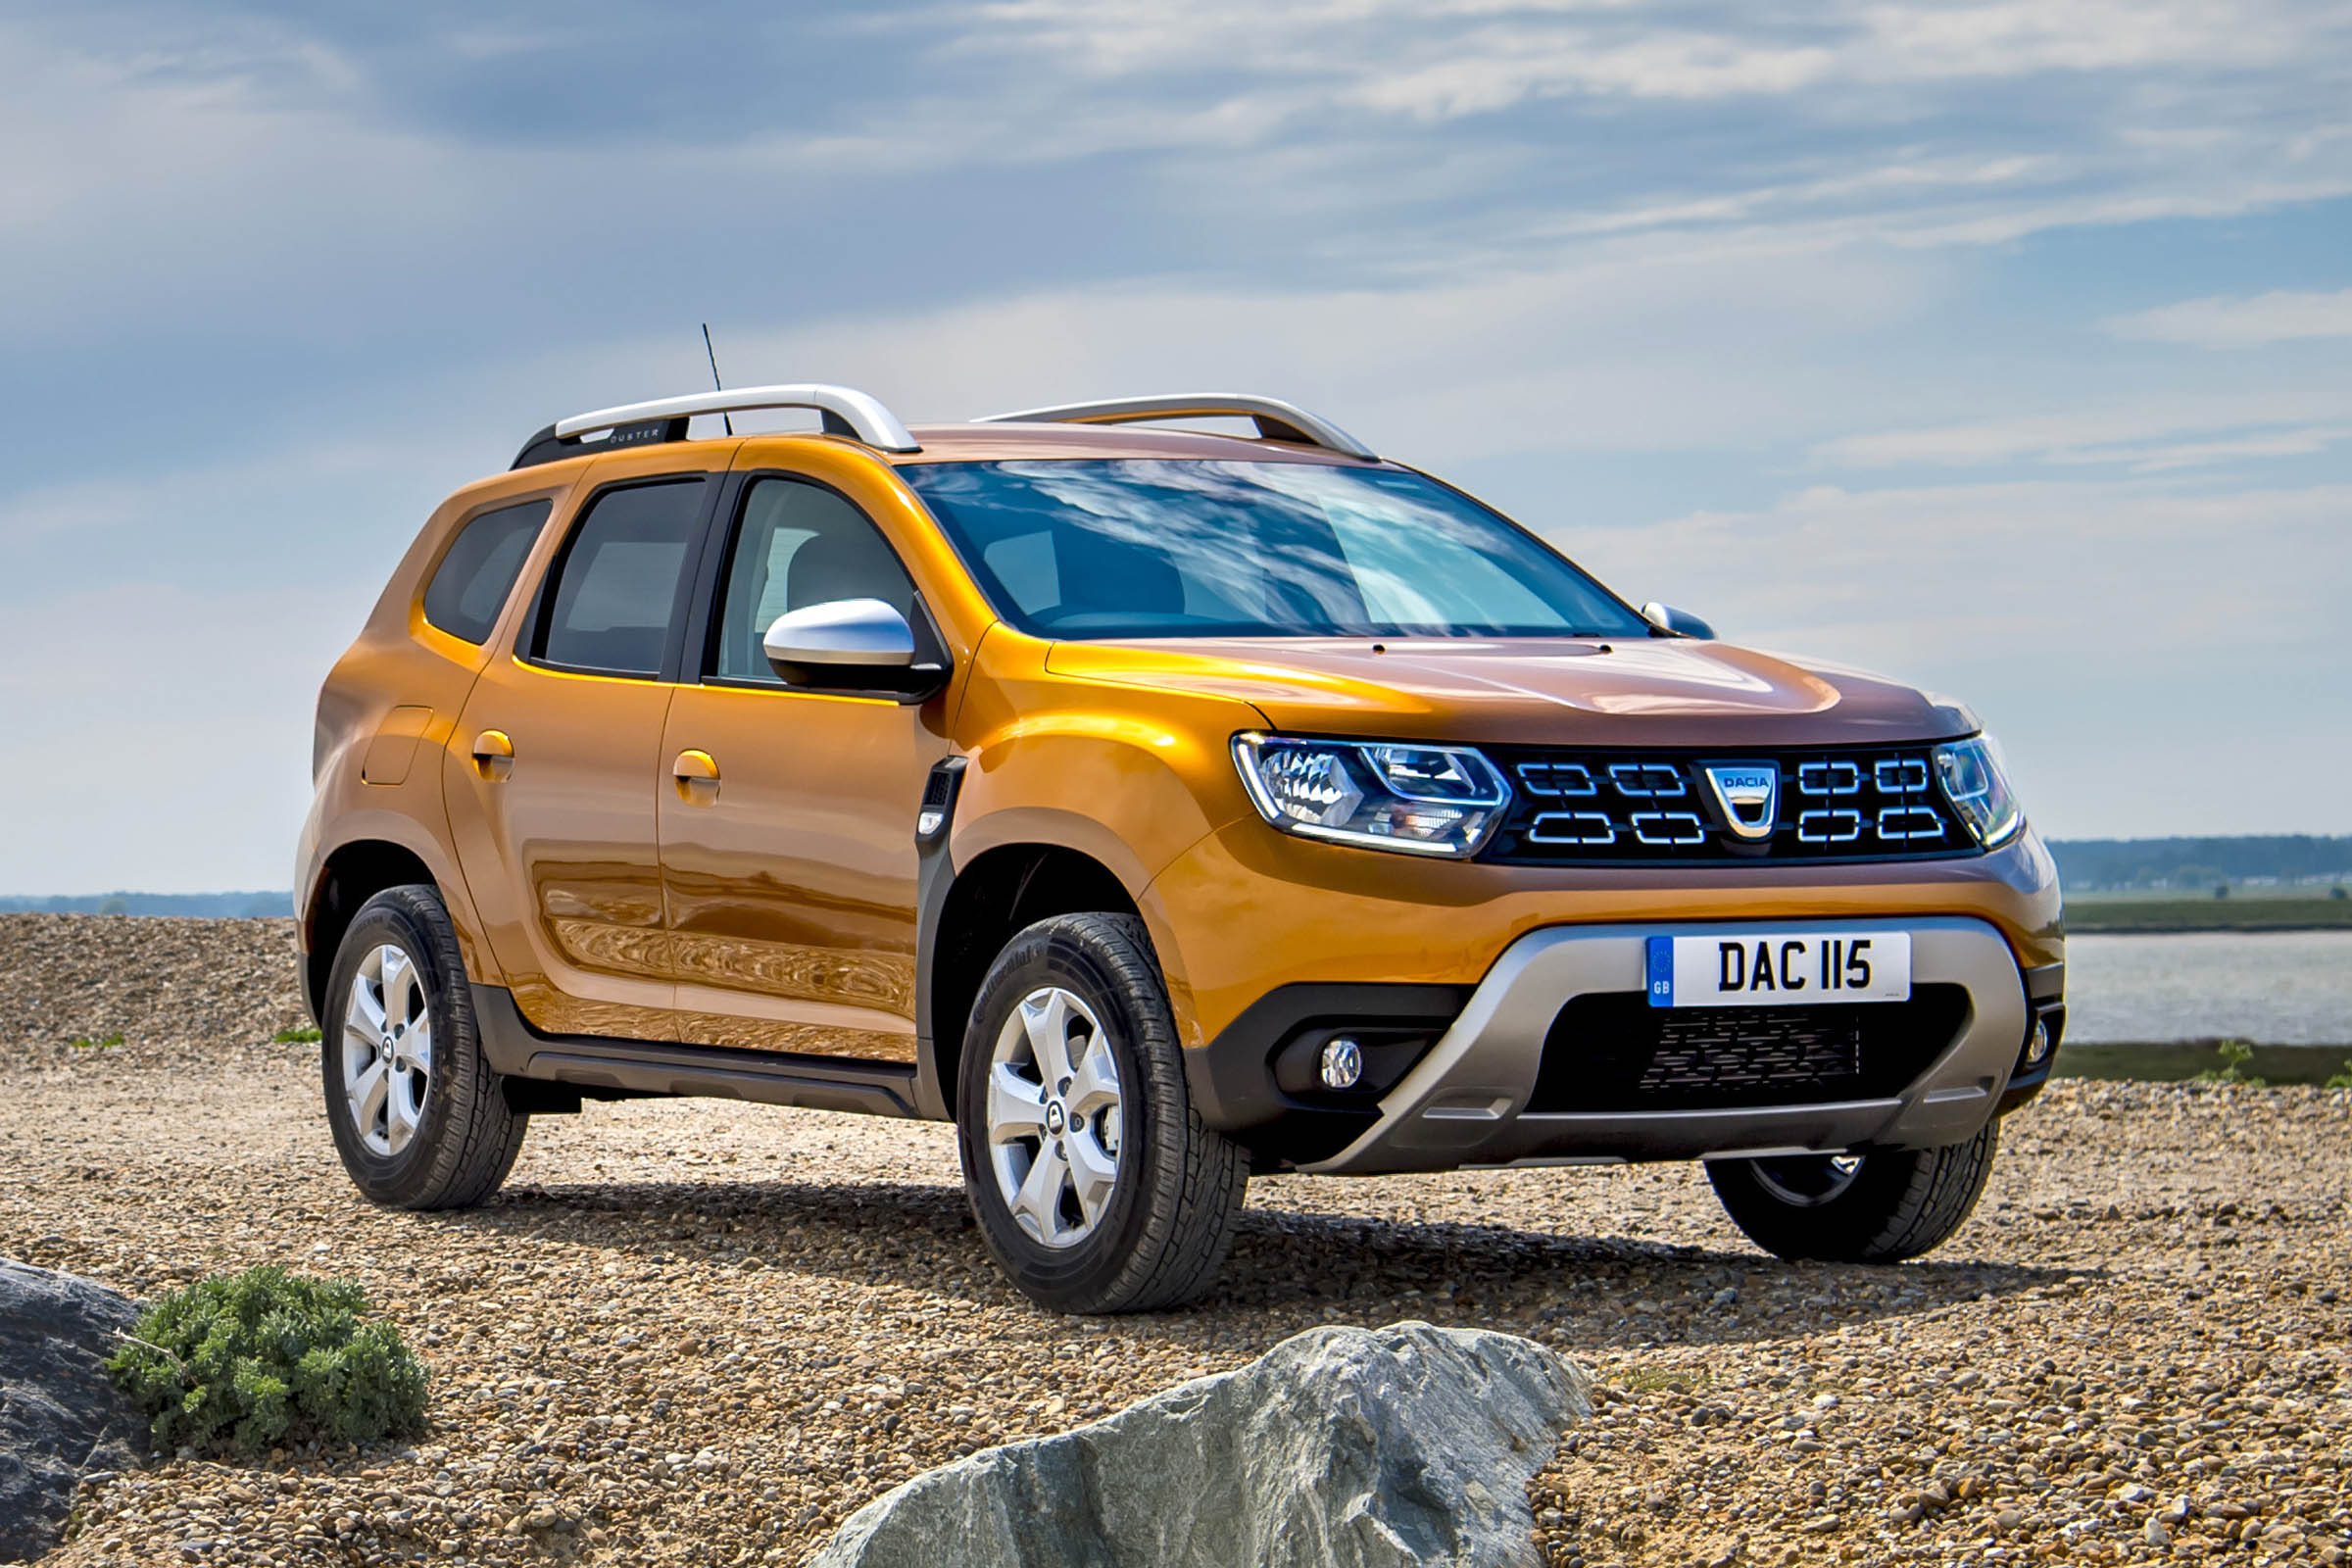 Dacia Duster Suv Reliability Safety Carbuyer